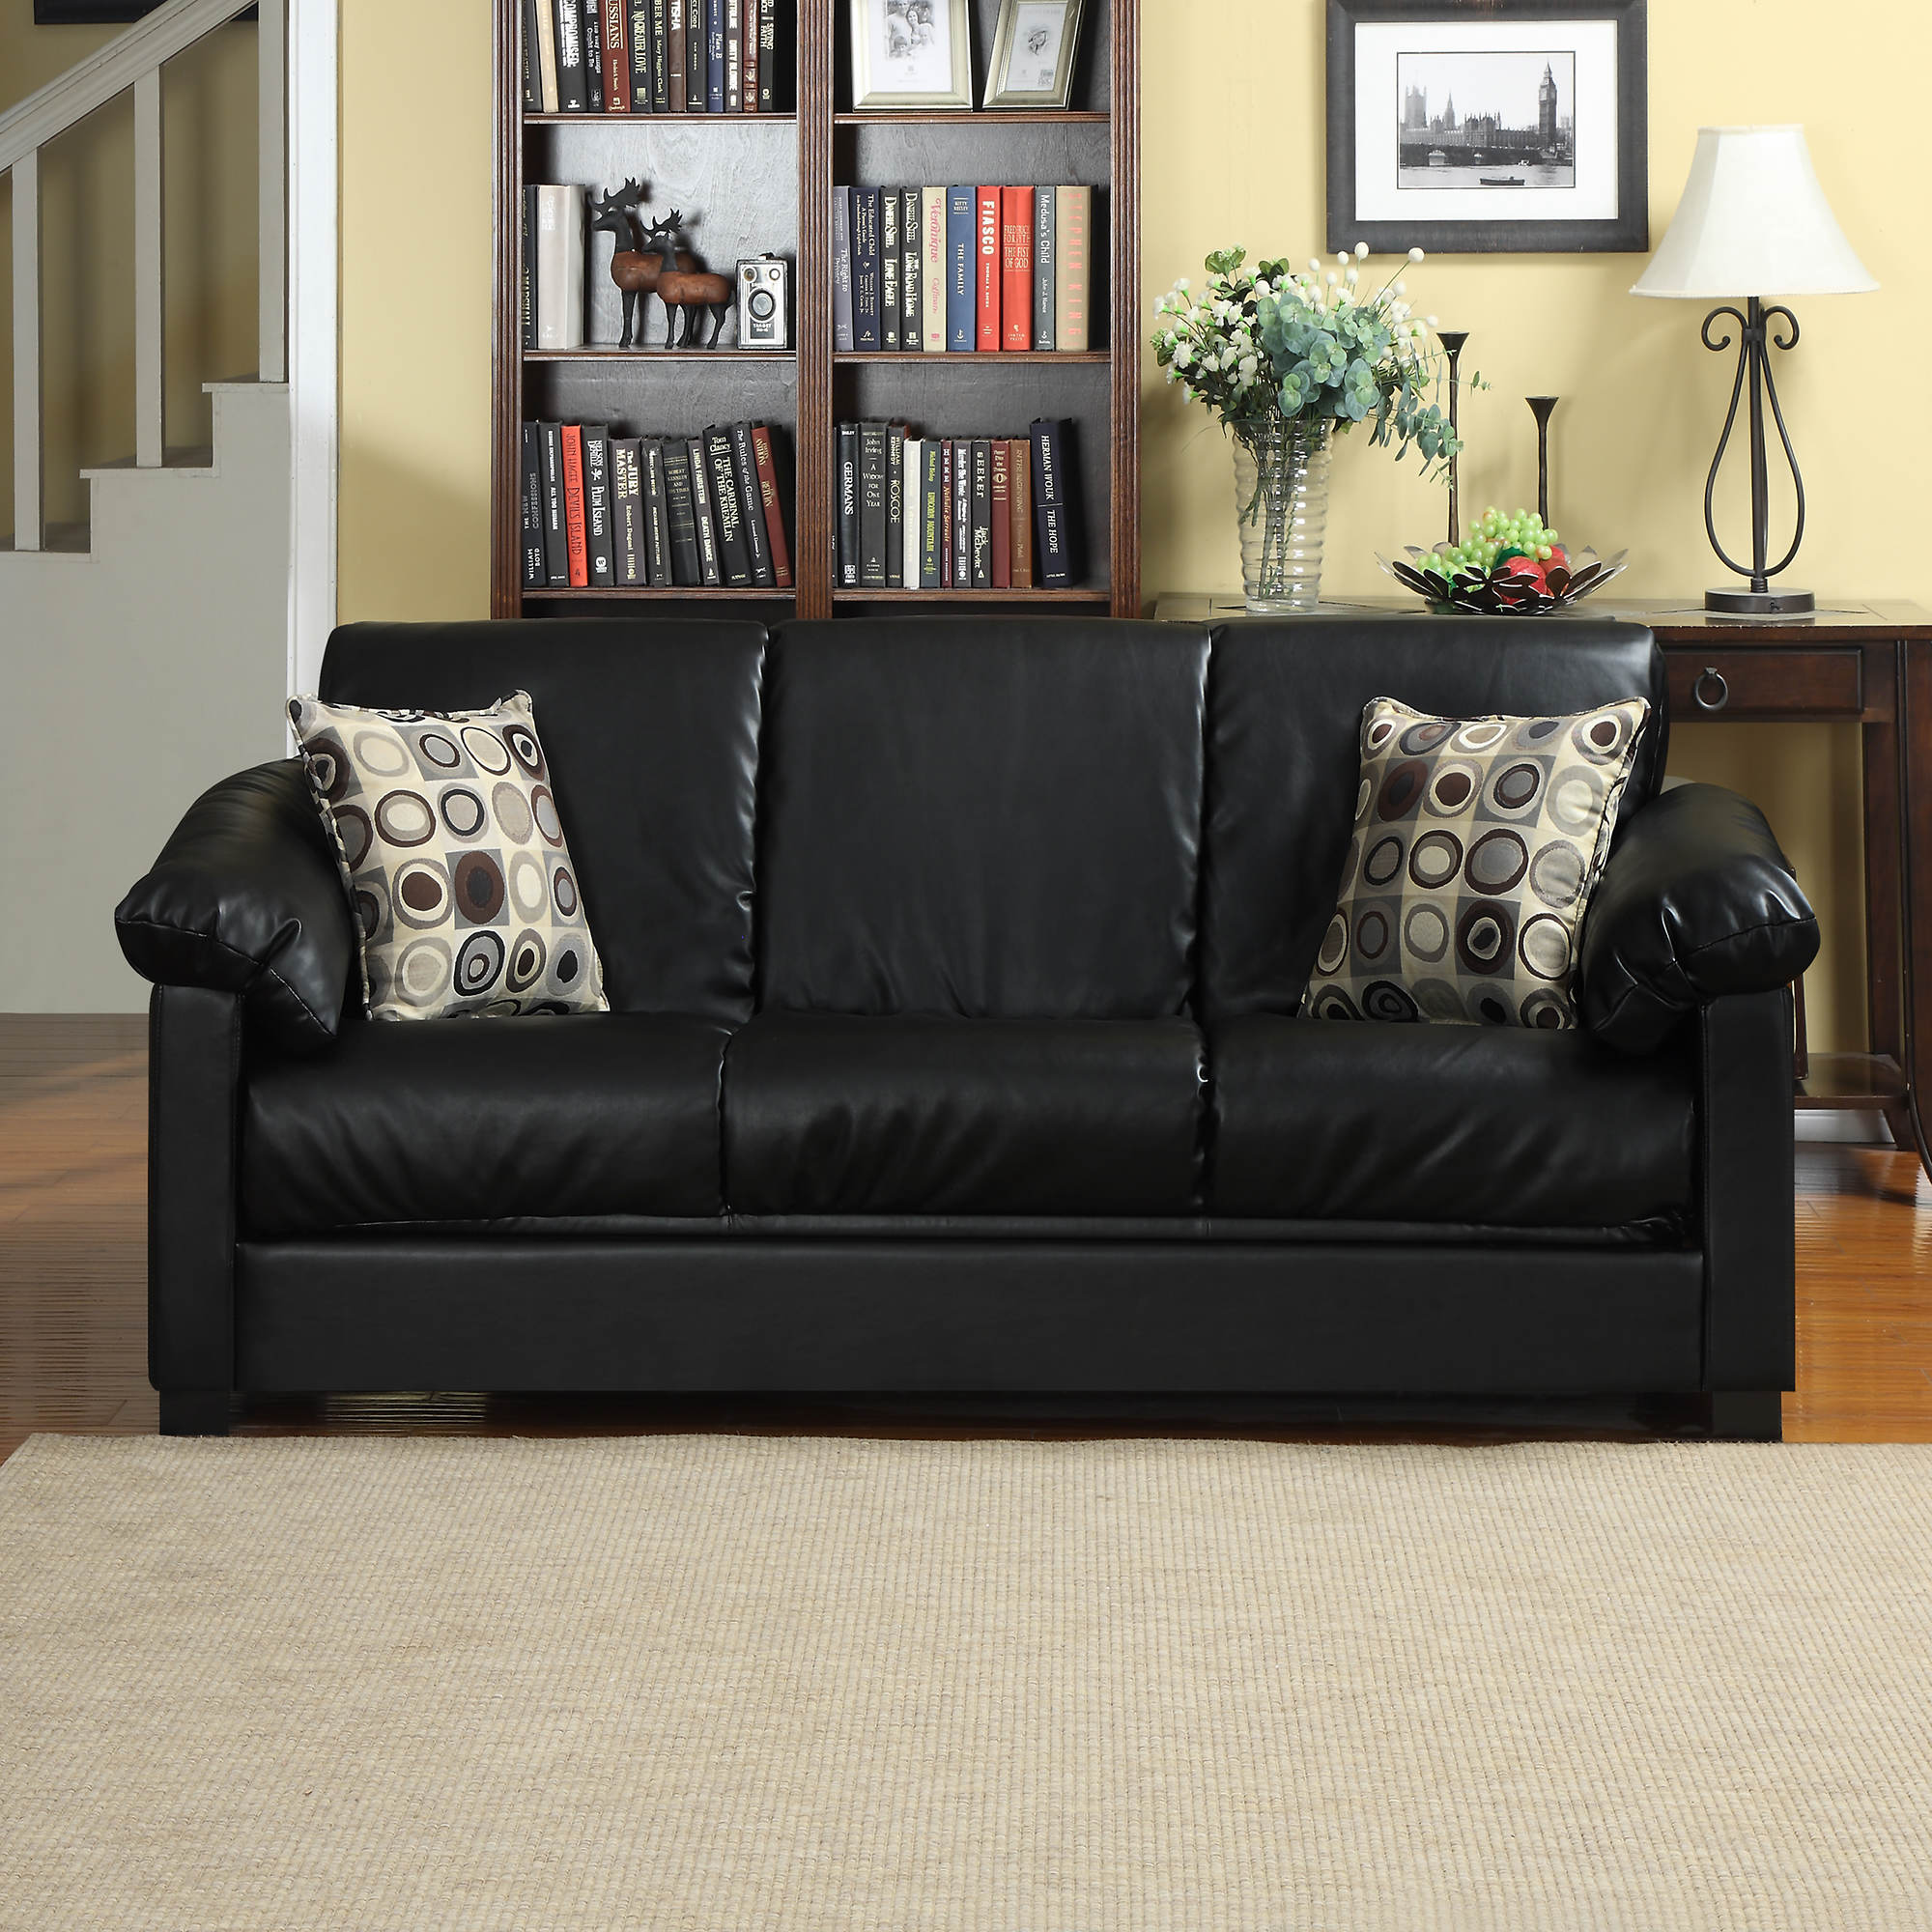 Handy Living Convert-a-Couch Renu Leather Full-Size ...